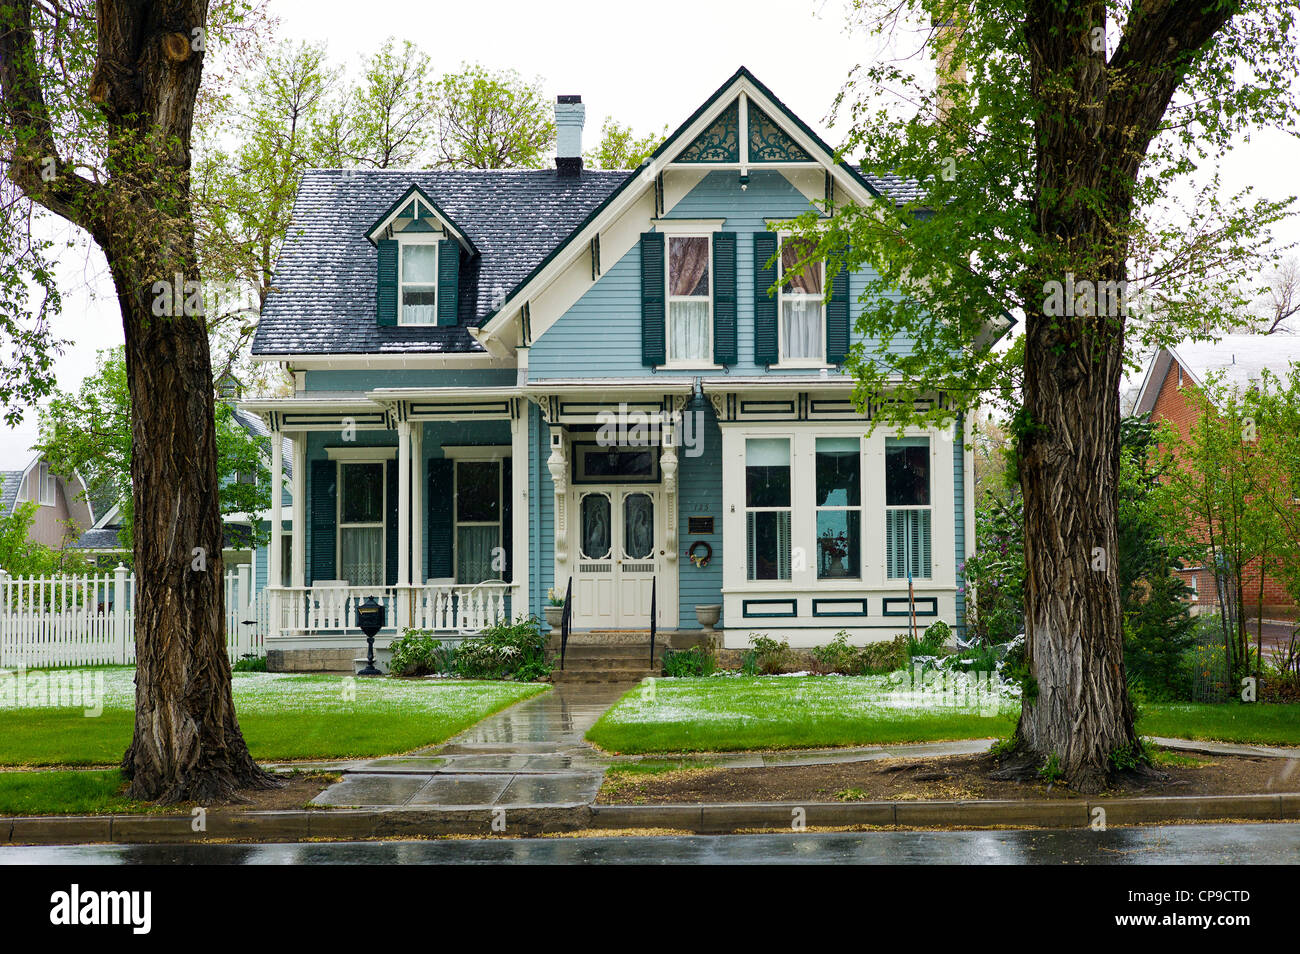 Style architectural victorien photos style architectural victorien images alamy - Maison victorienne ...